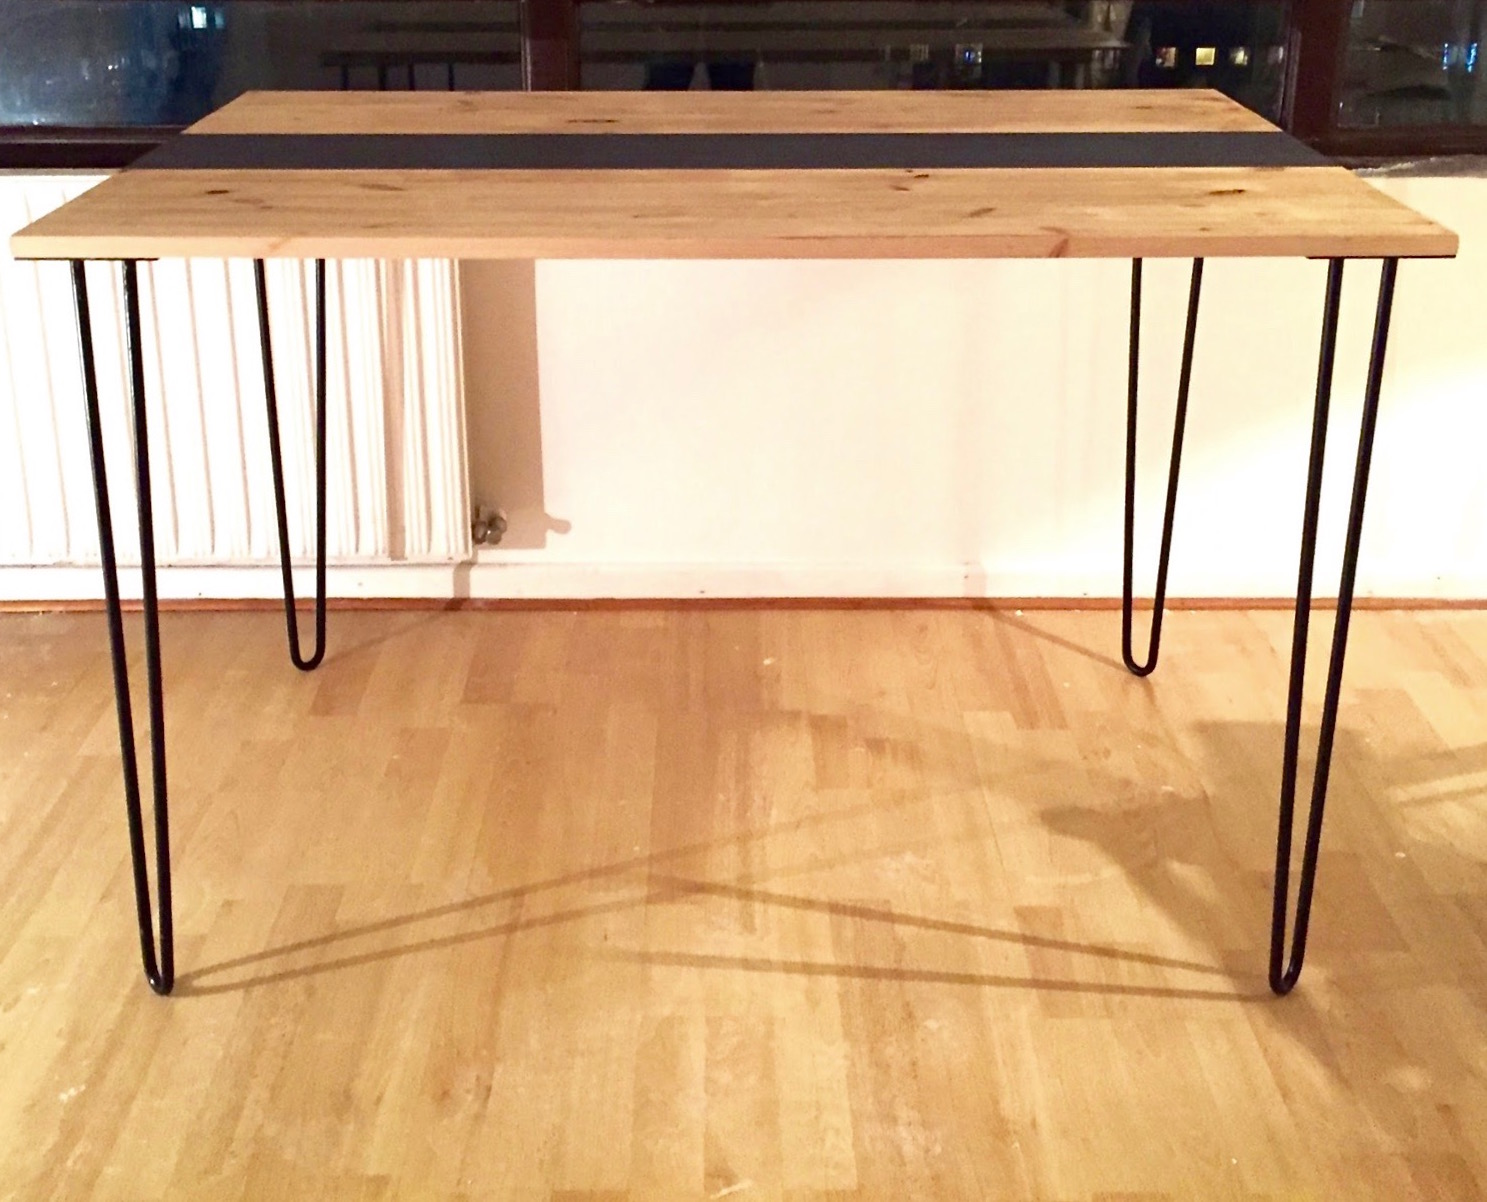 diy deco d fi 1 r aliser une table manger design pour 100 trop chic pas cher. Black Bedroom Furniture Sets. Home Design Ideas